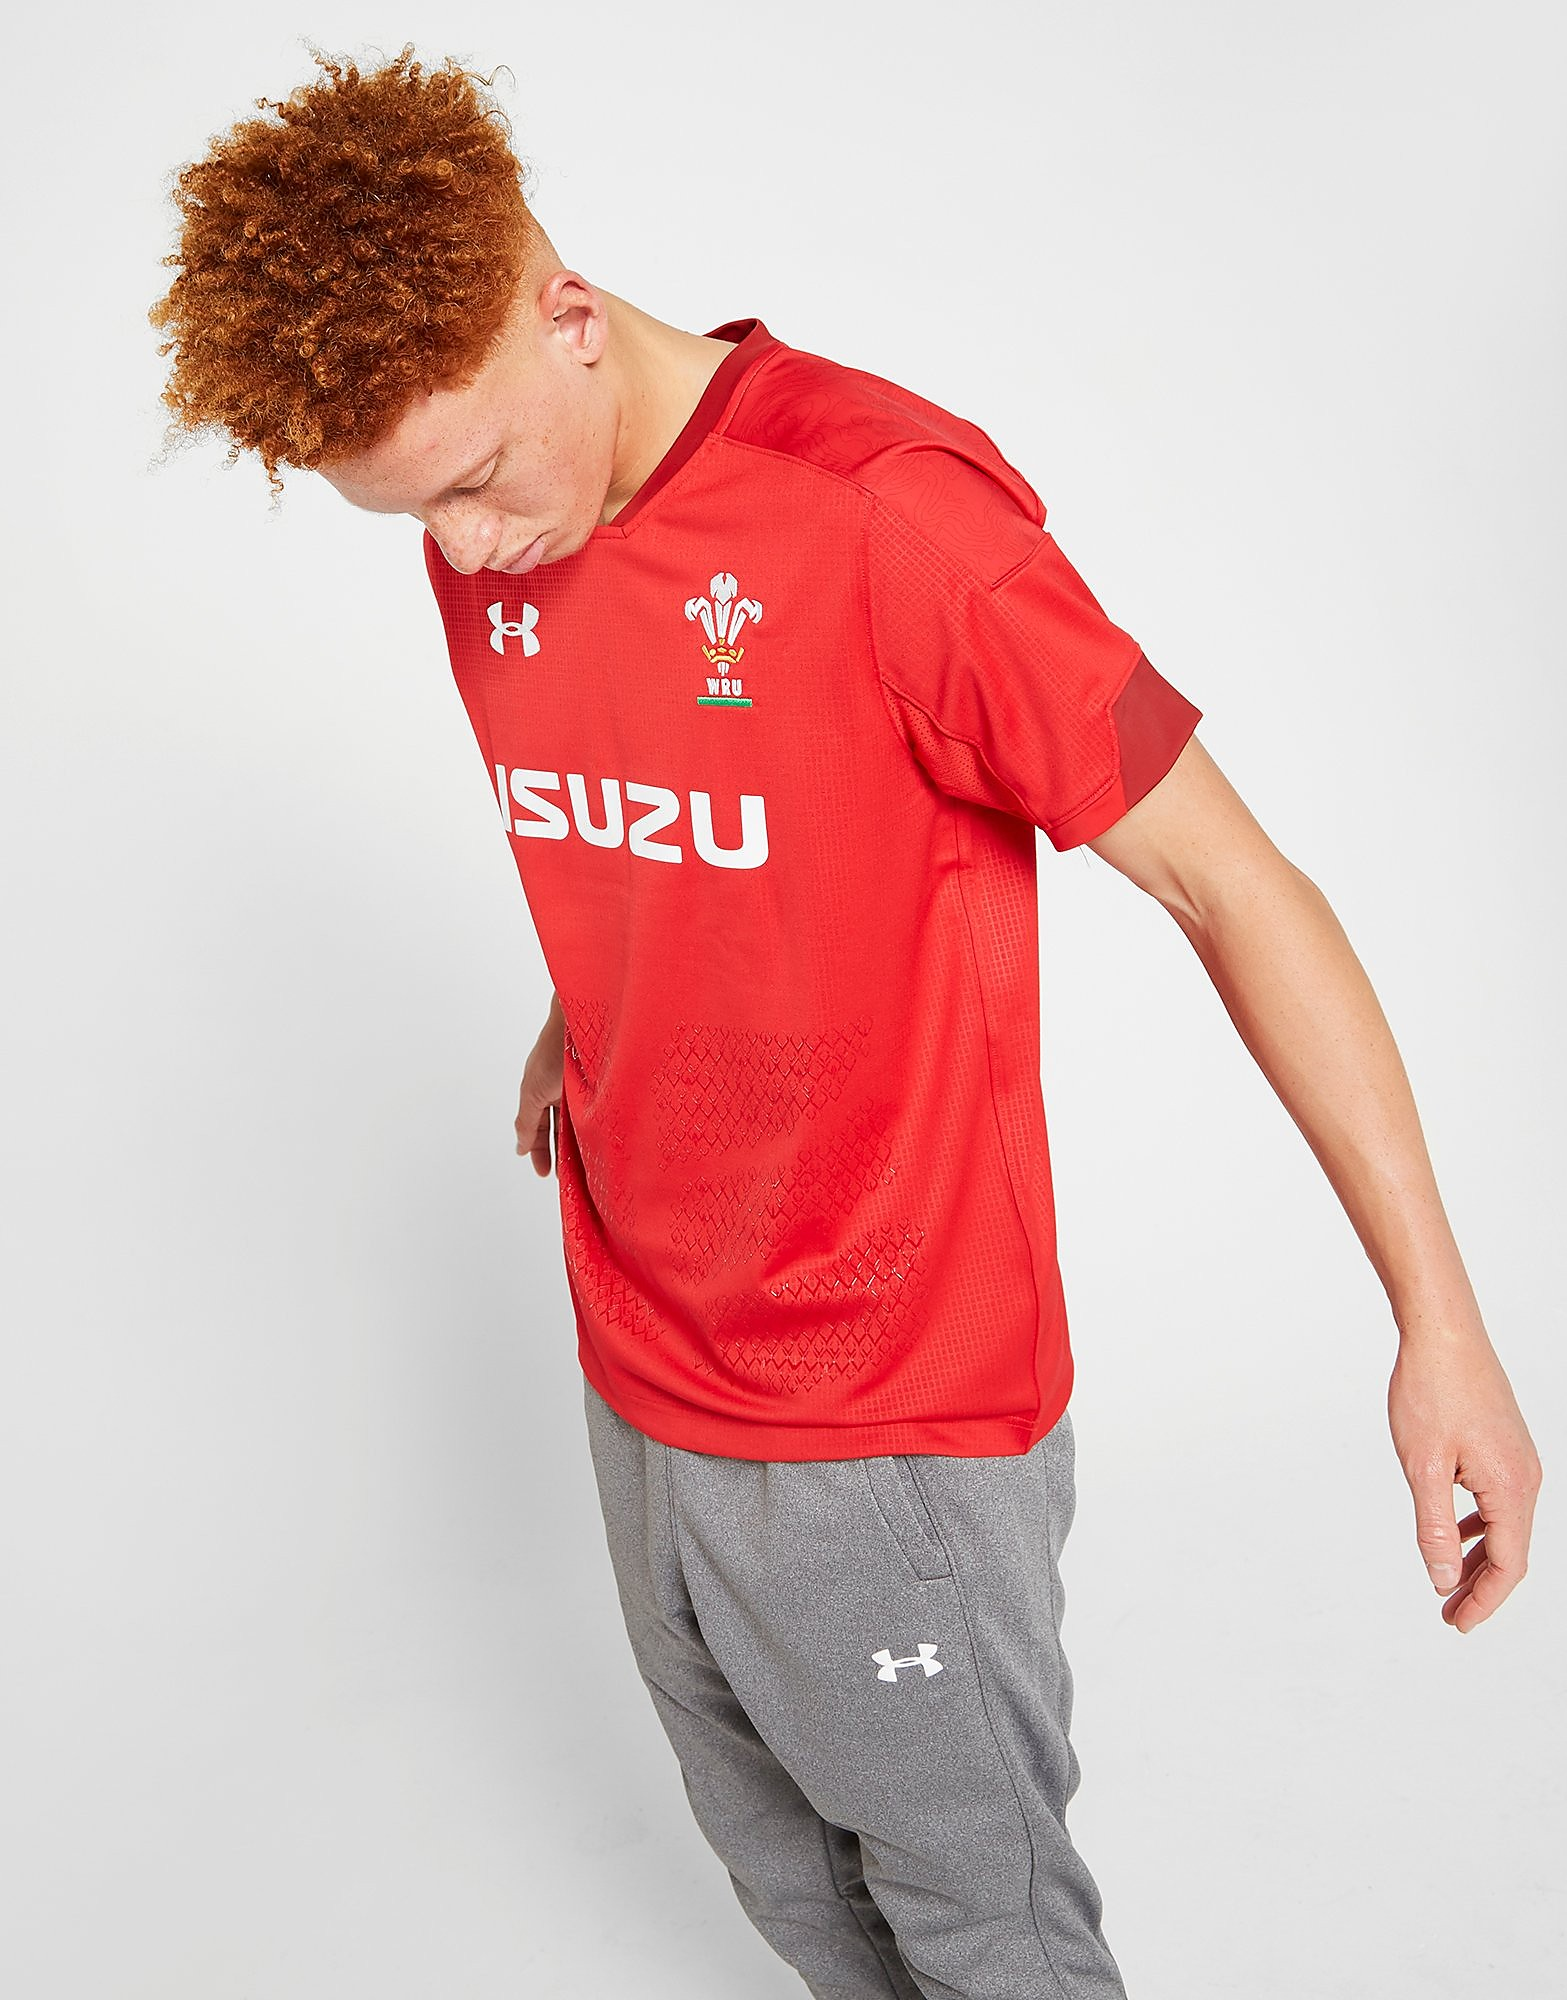 Under Armour Wales RU 2017/18 Home Shirt